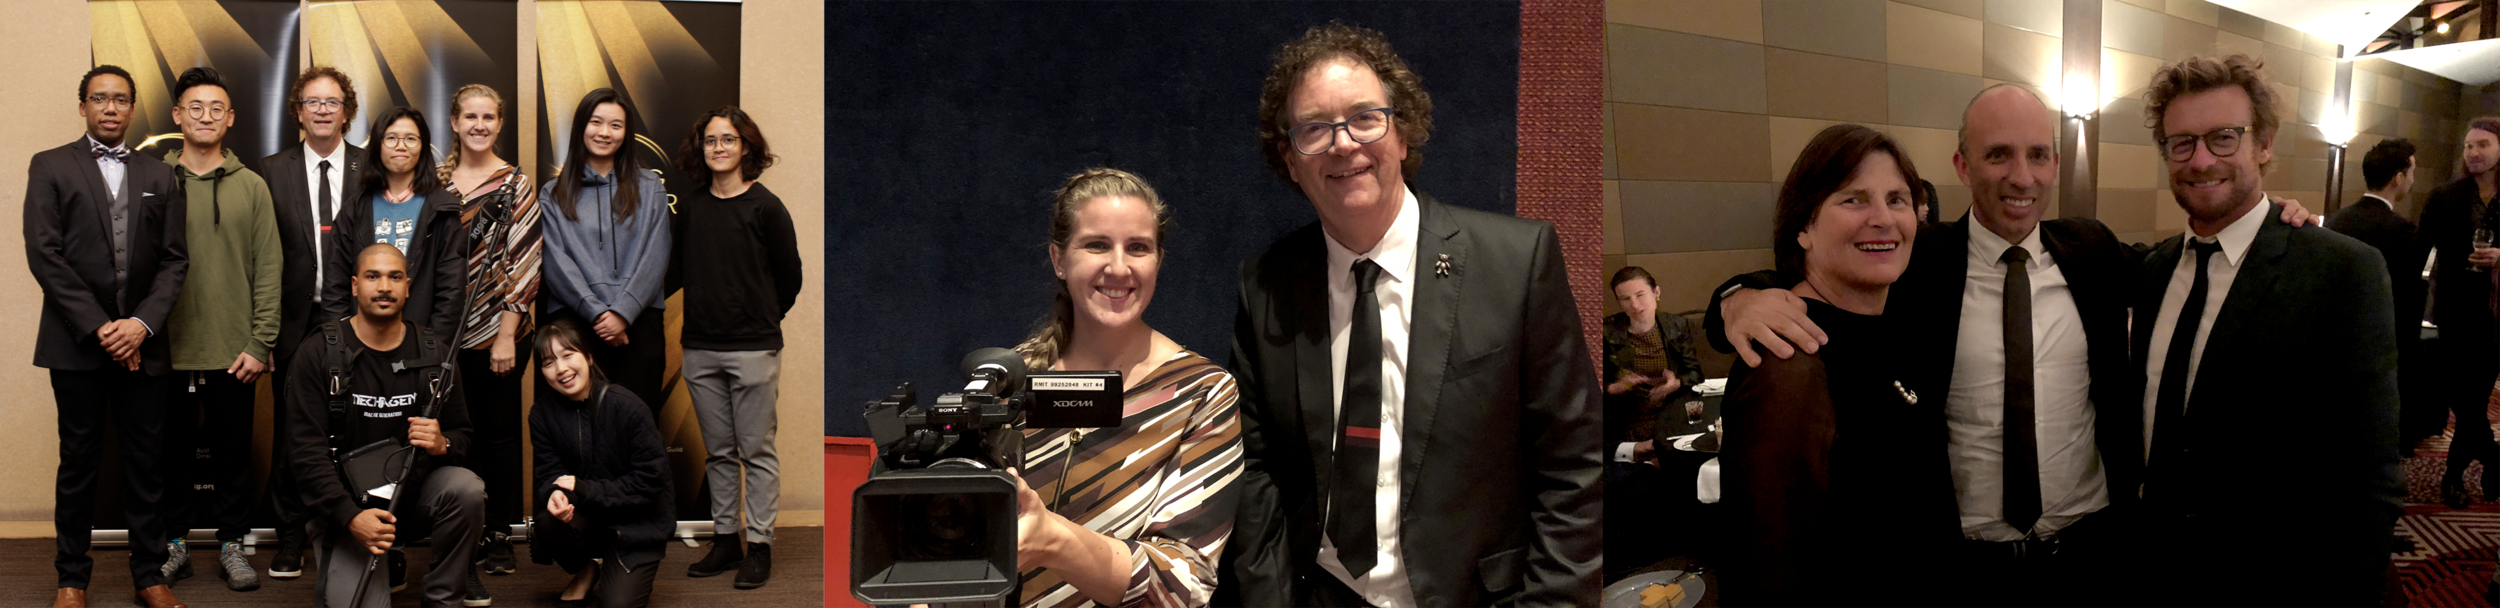 Mark Poole (Head of ADG Victoria), Master of Media students, Sue Maslin (film producer) and Simon Baker (actor/director) at the ADG awards